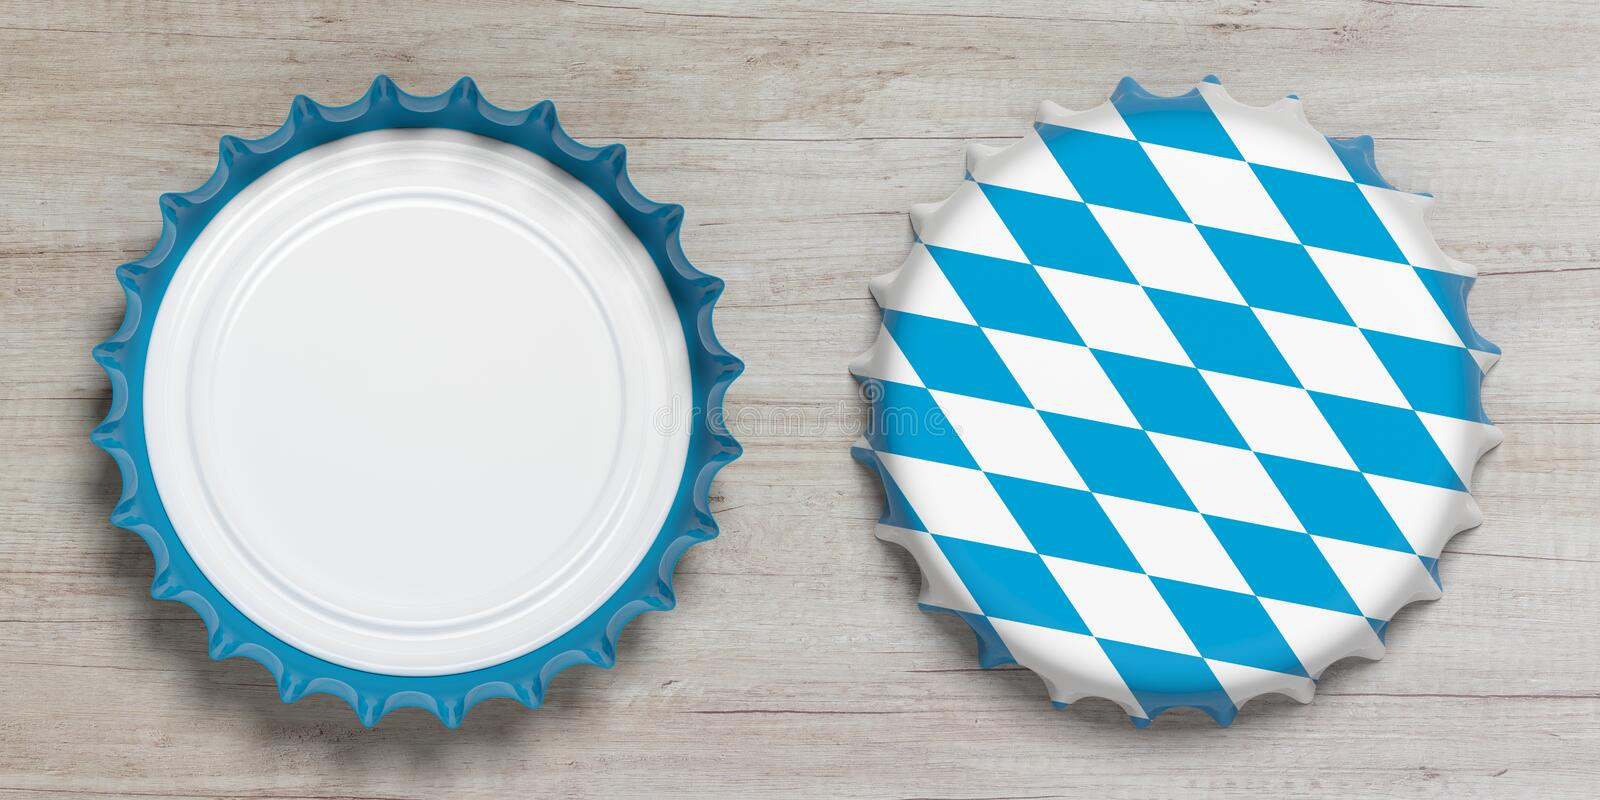 Octoberfest, Front and back view of beer caps with Bavaria flag isolated on wooden background, top view. 3d illustration. Octoberfest, Beer festival, Germany stock photo